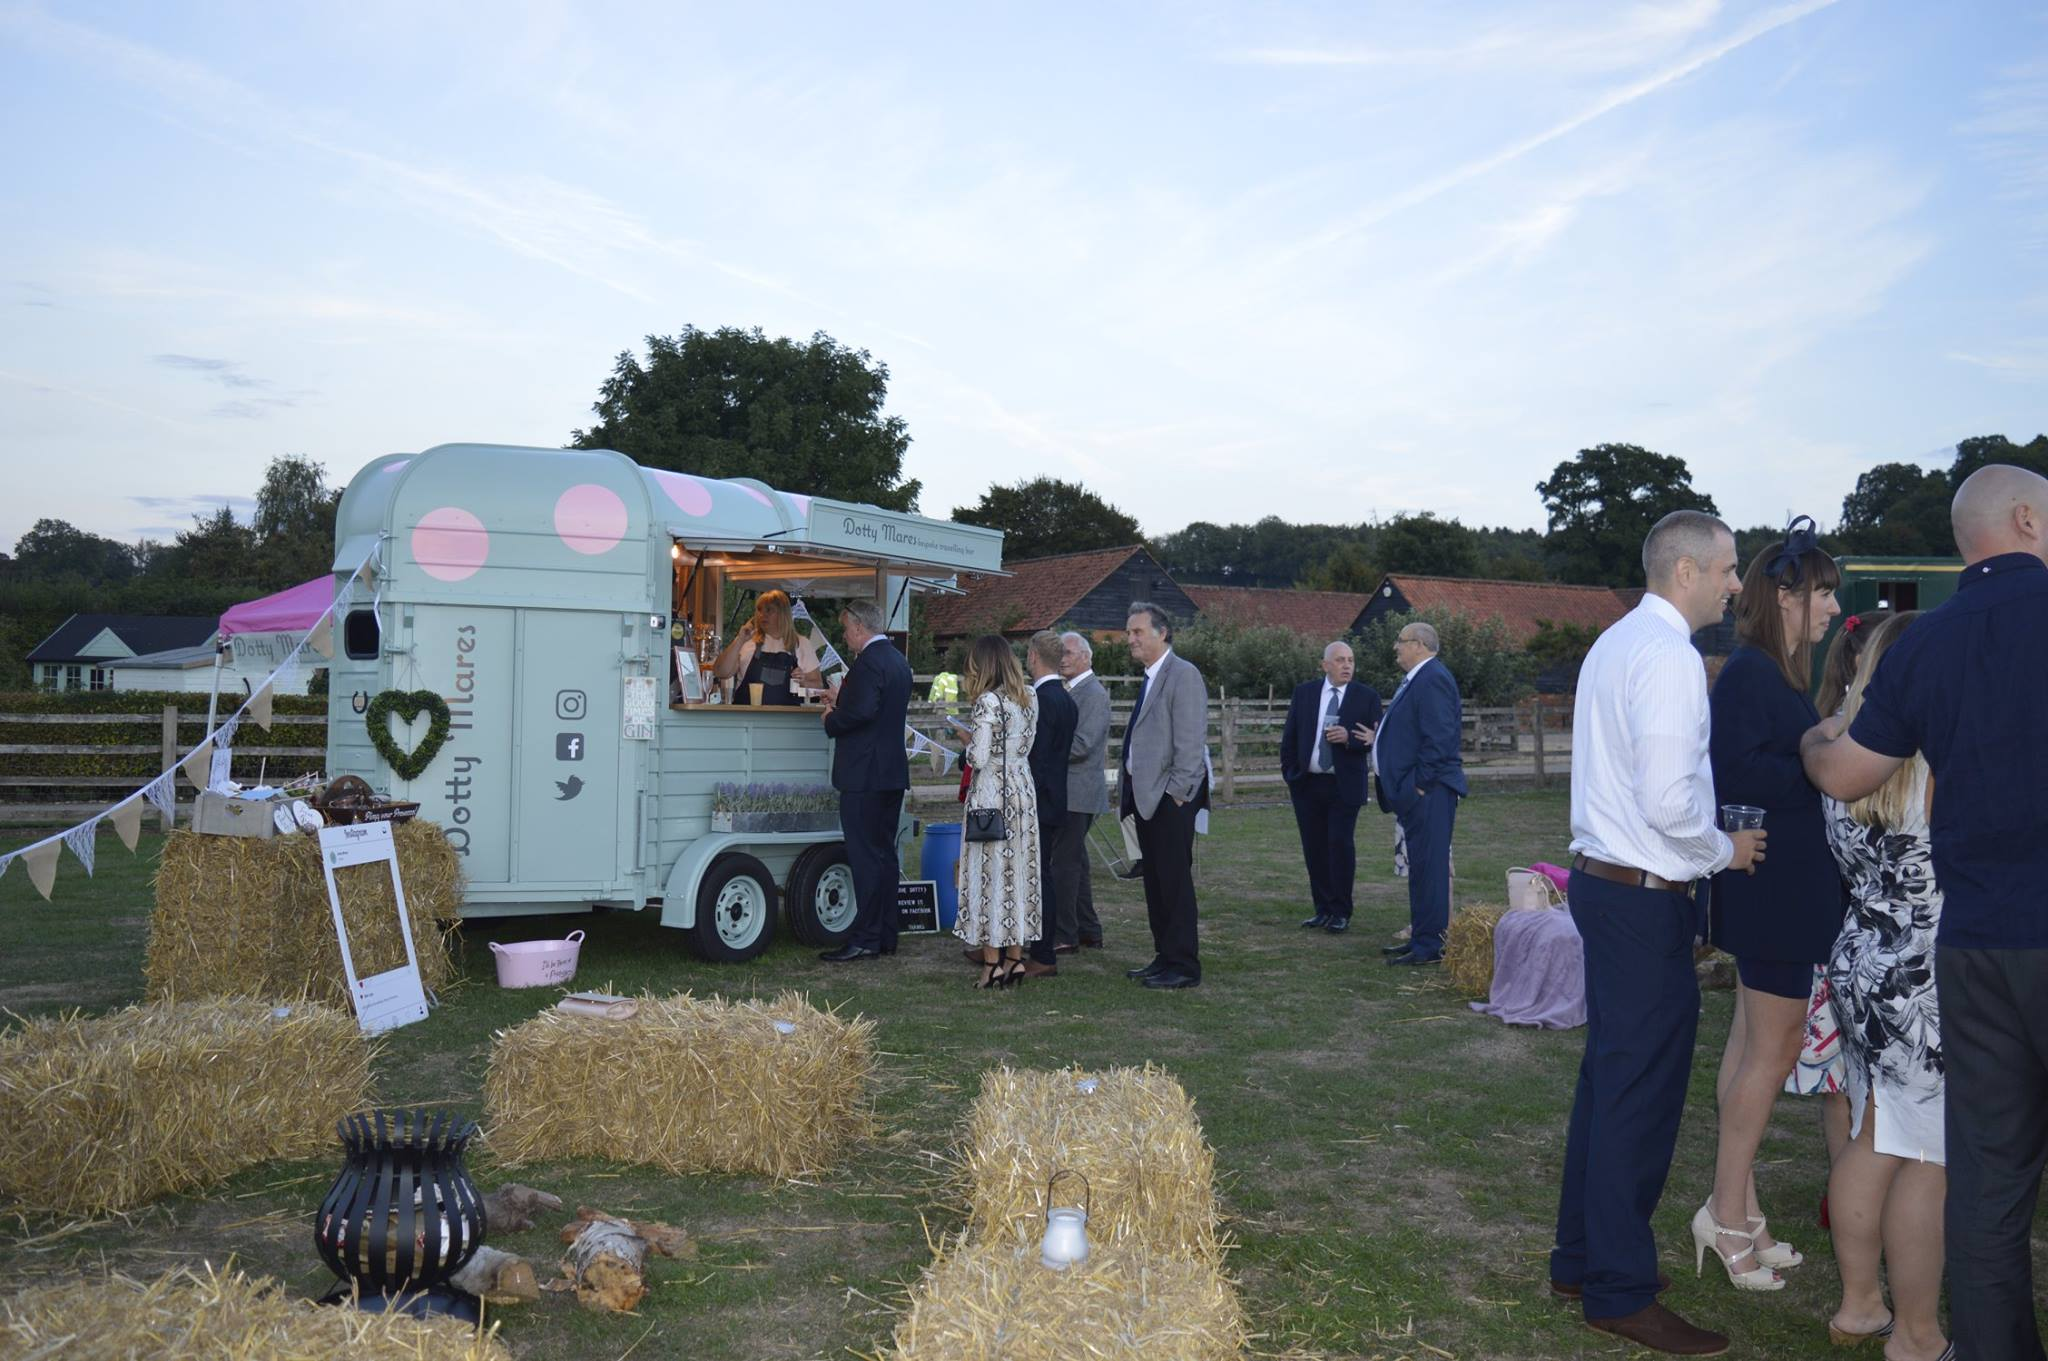 """""""Everyone loved the choice of drinks they provided"""" - We booked the Dotty Mares to serve drinks throughout the day of our wedding and they were absolutely fantastic! Everyone loved the choice of drinks they provided including locally sourced beer and special touches like 'pimp your prosecco.' We had people passing by the field where the reception was held asking where they could book them which shows just how good they looked and how popular they were on the day.The team are unbelievably friendly and helped make our day extremely special. Thank you very much! Cannot wait to have you at the next event - whenever that may be. Love Amy & John xxPrivate Wedding08/08/18"""